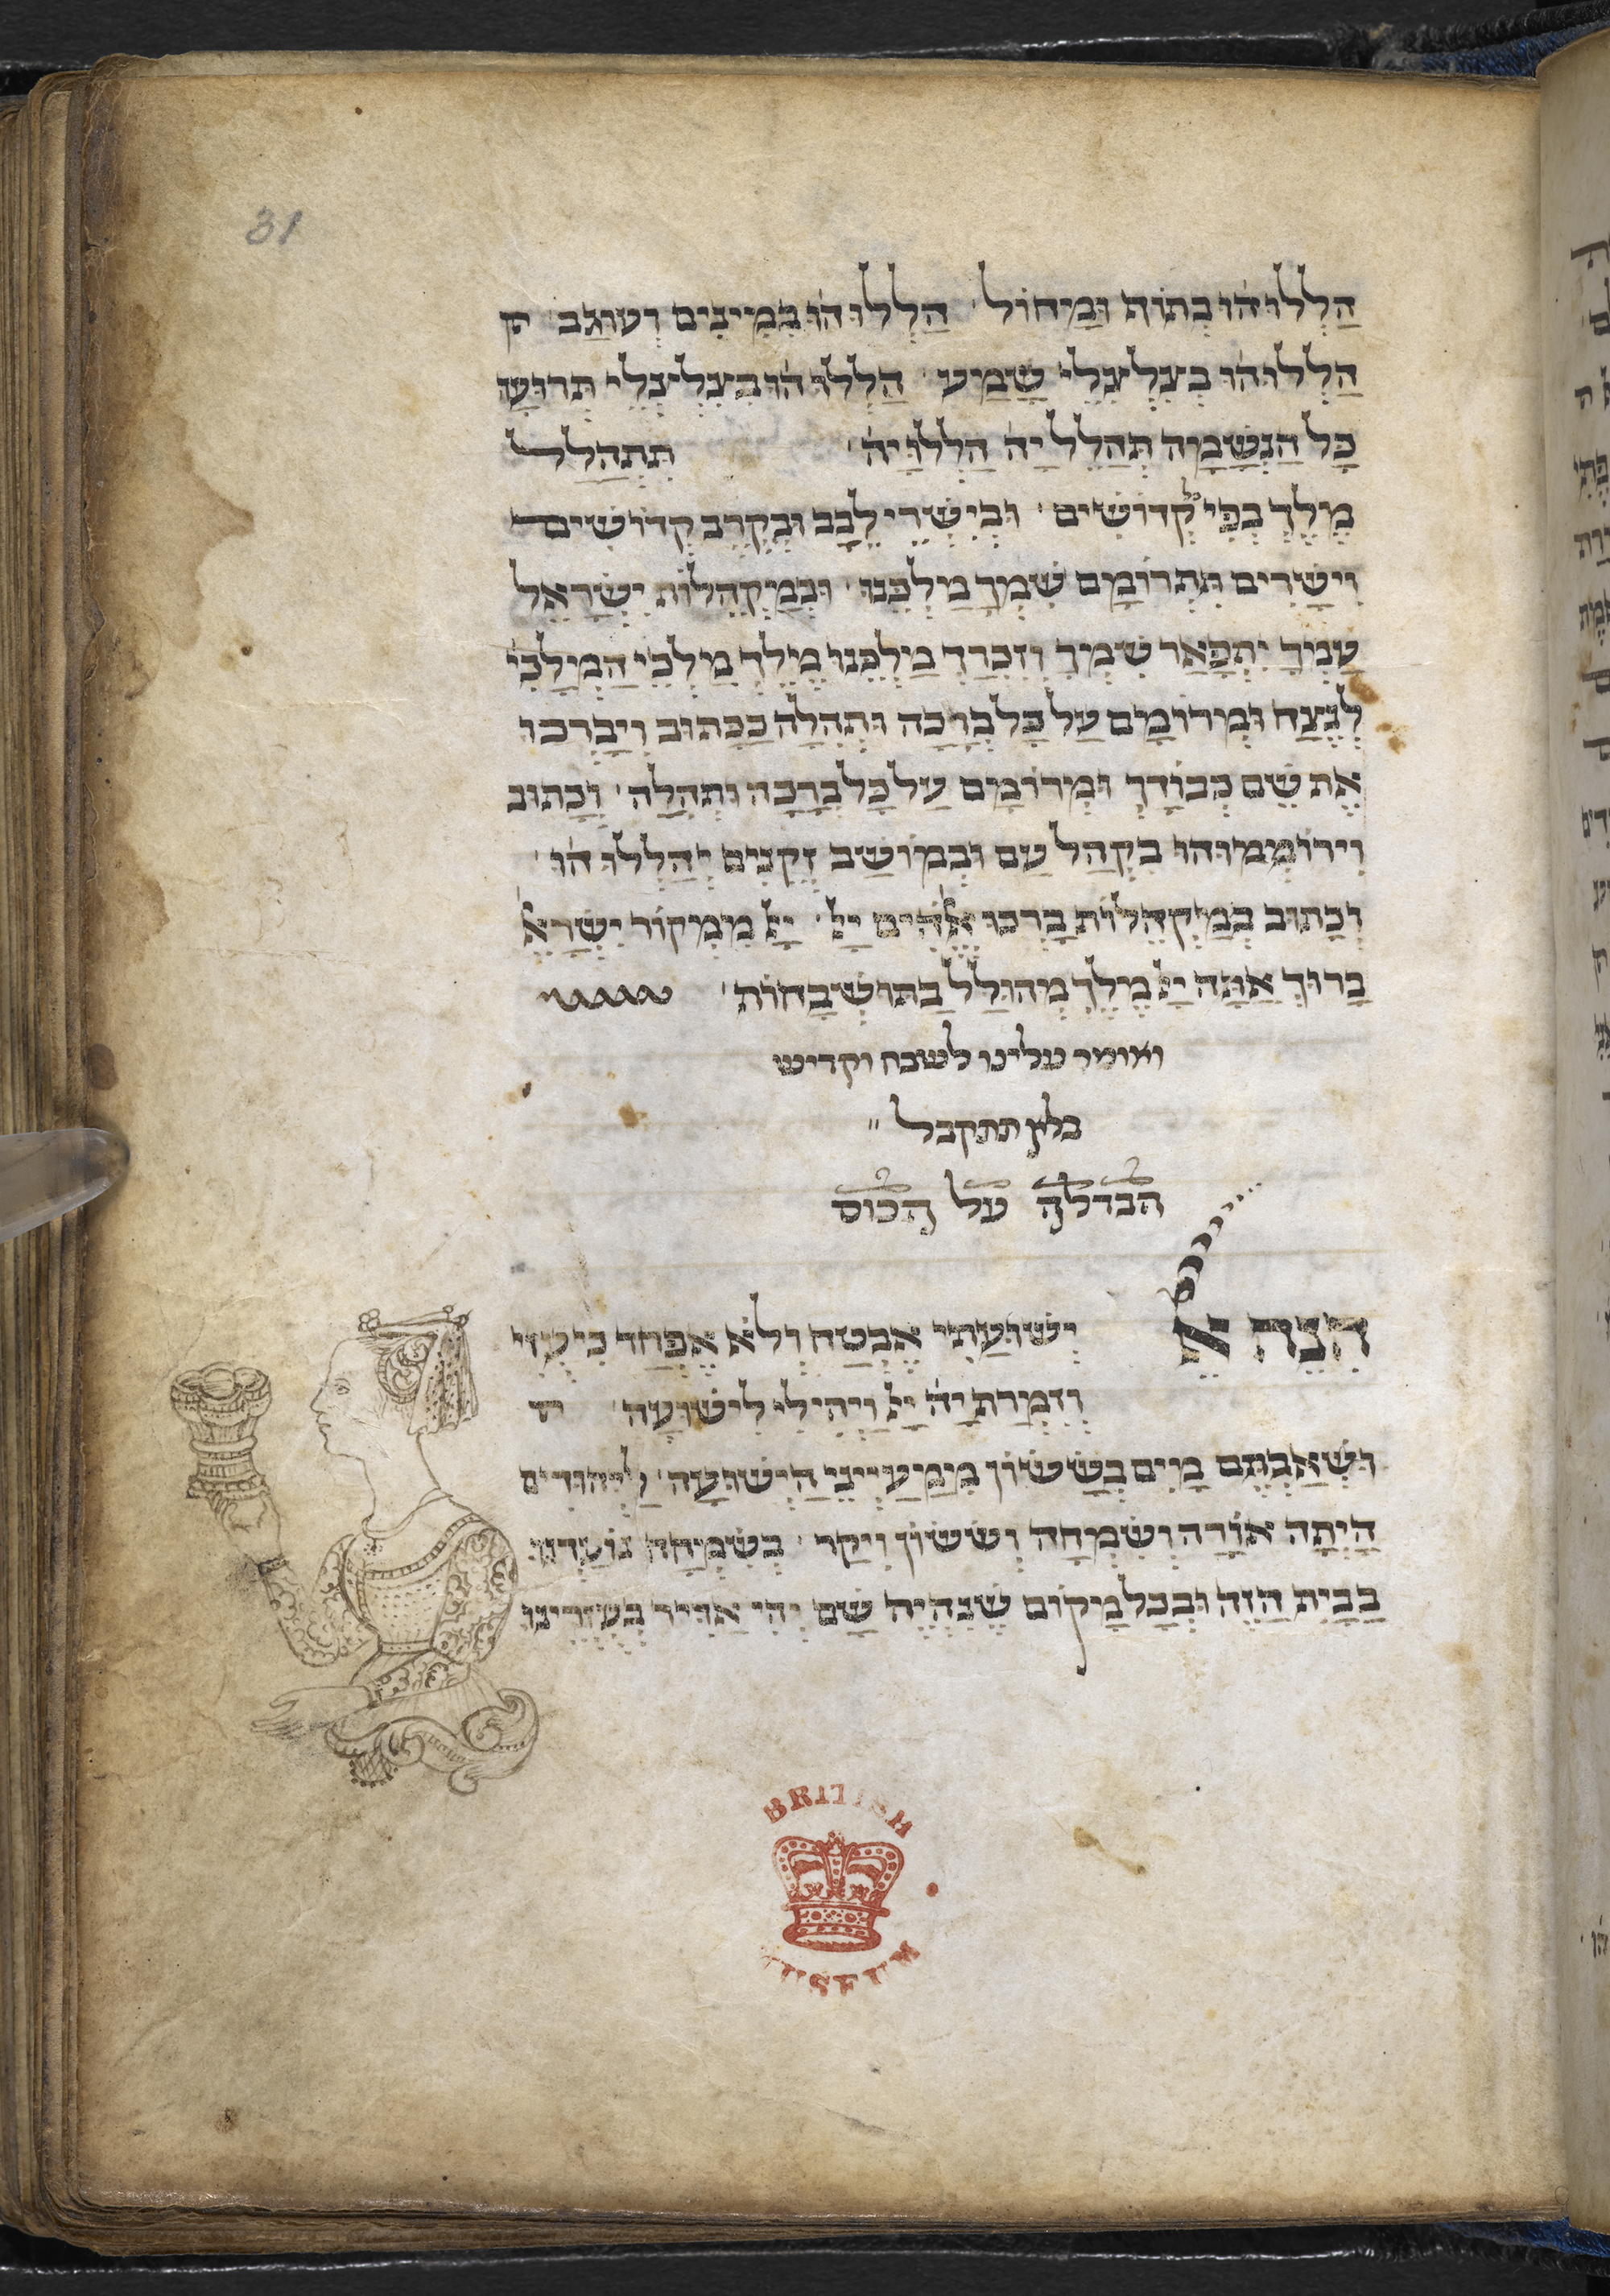 Illustration of havdalah being recited over wine, Italy, 1469 CE, Add MS 26957, Hebrew Manuscripts Digitisation Project, British Library